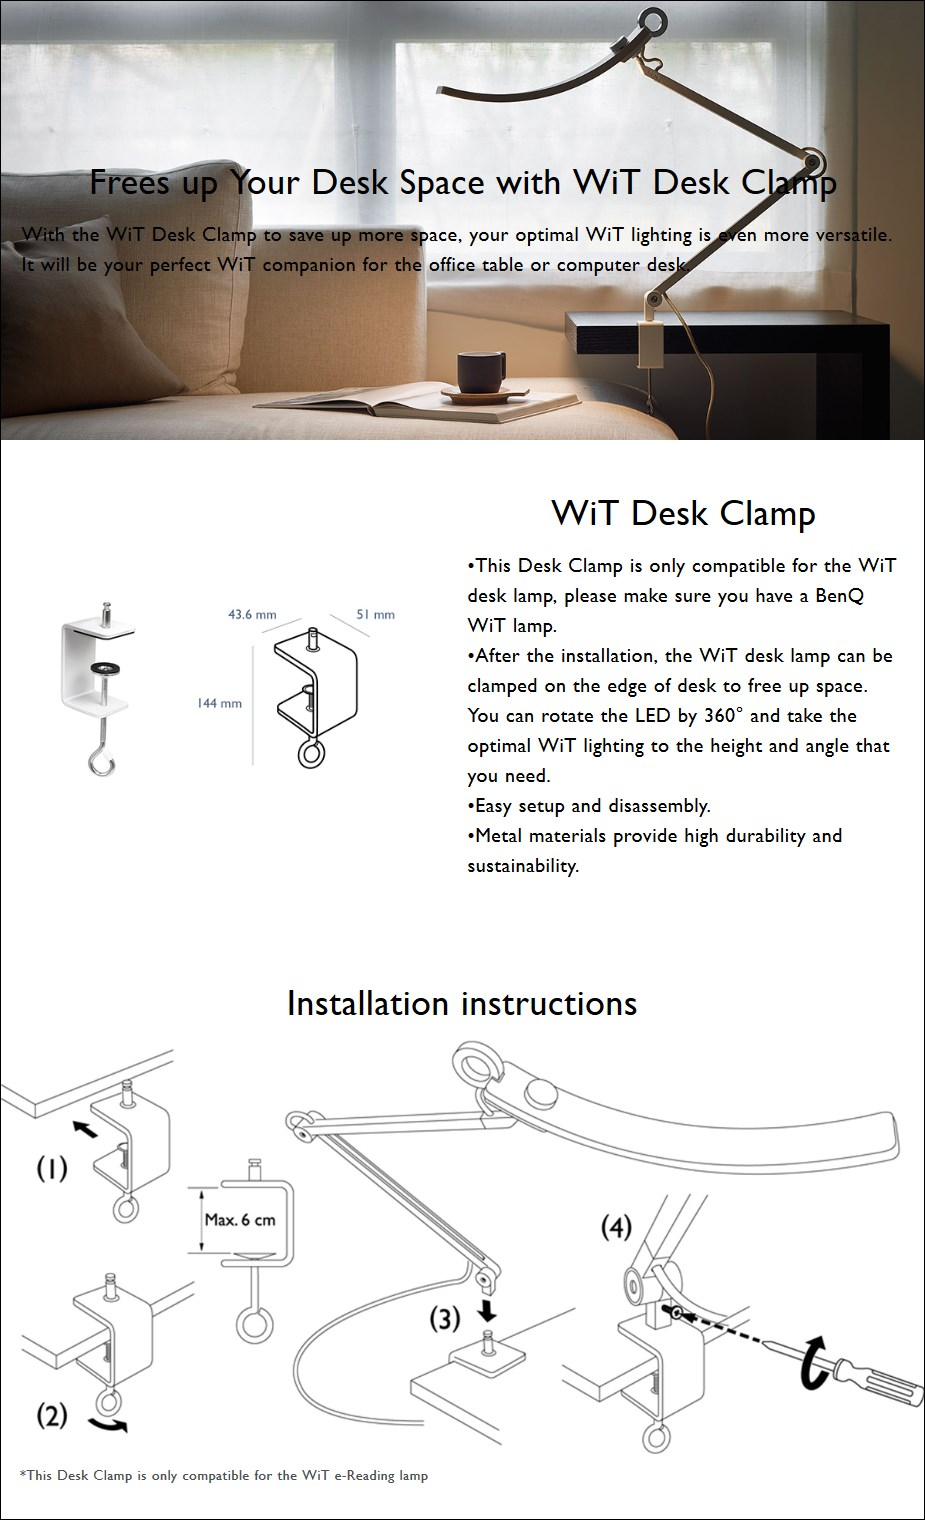 BenQ WiT Lamp Desk Clamp - Overview 1